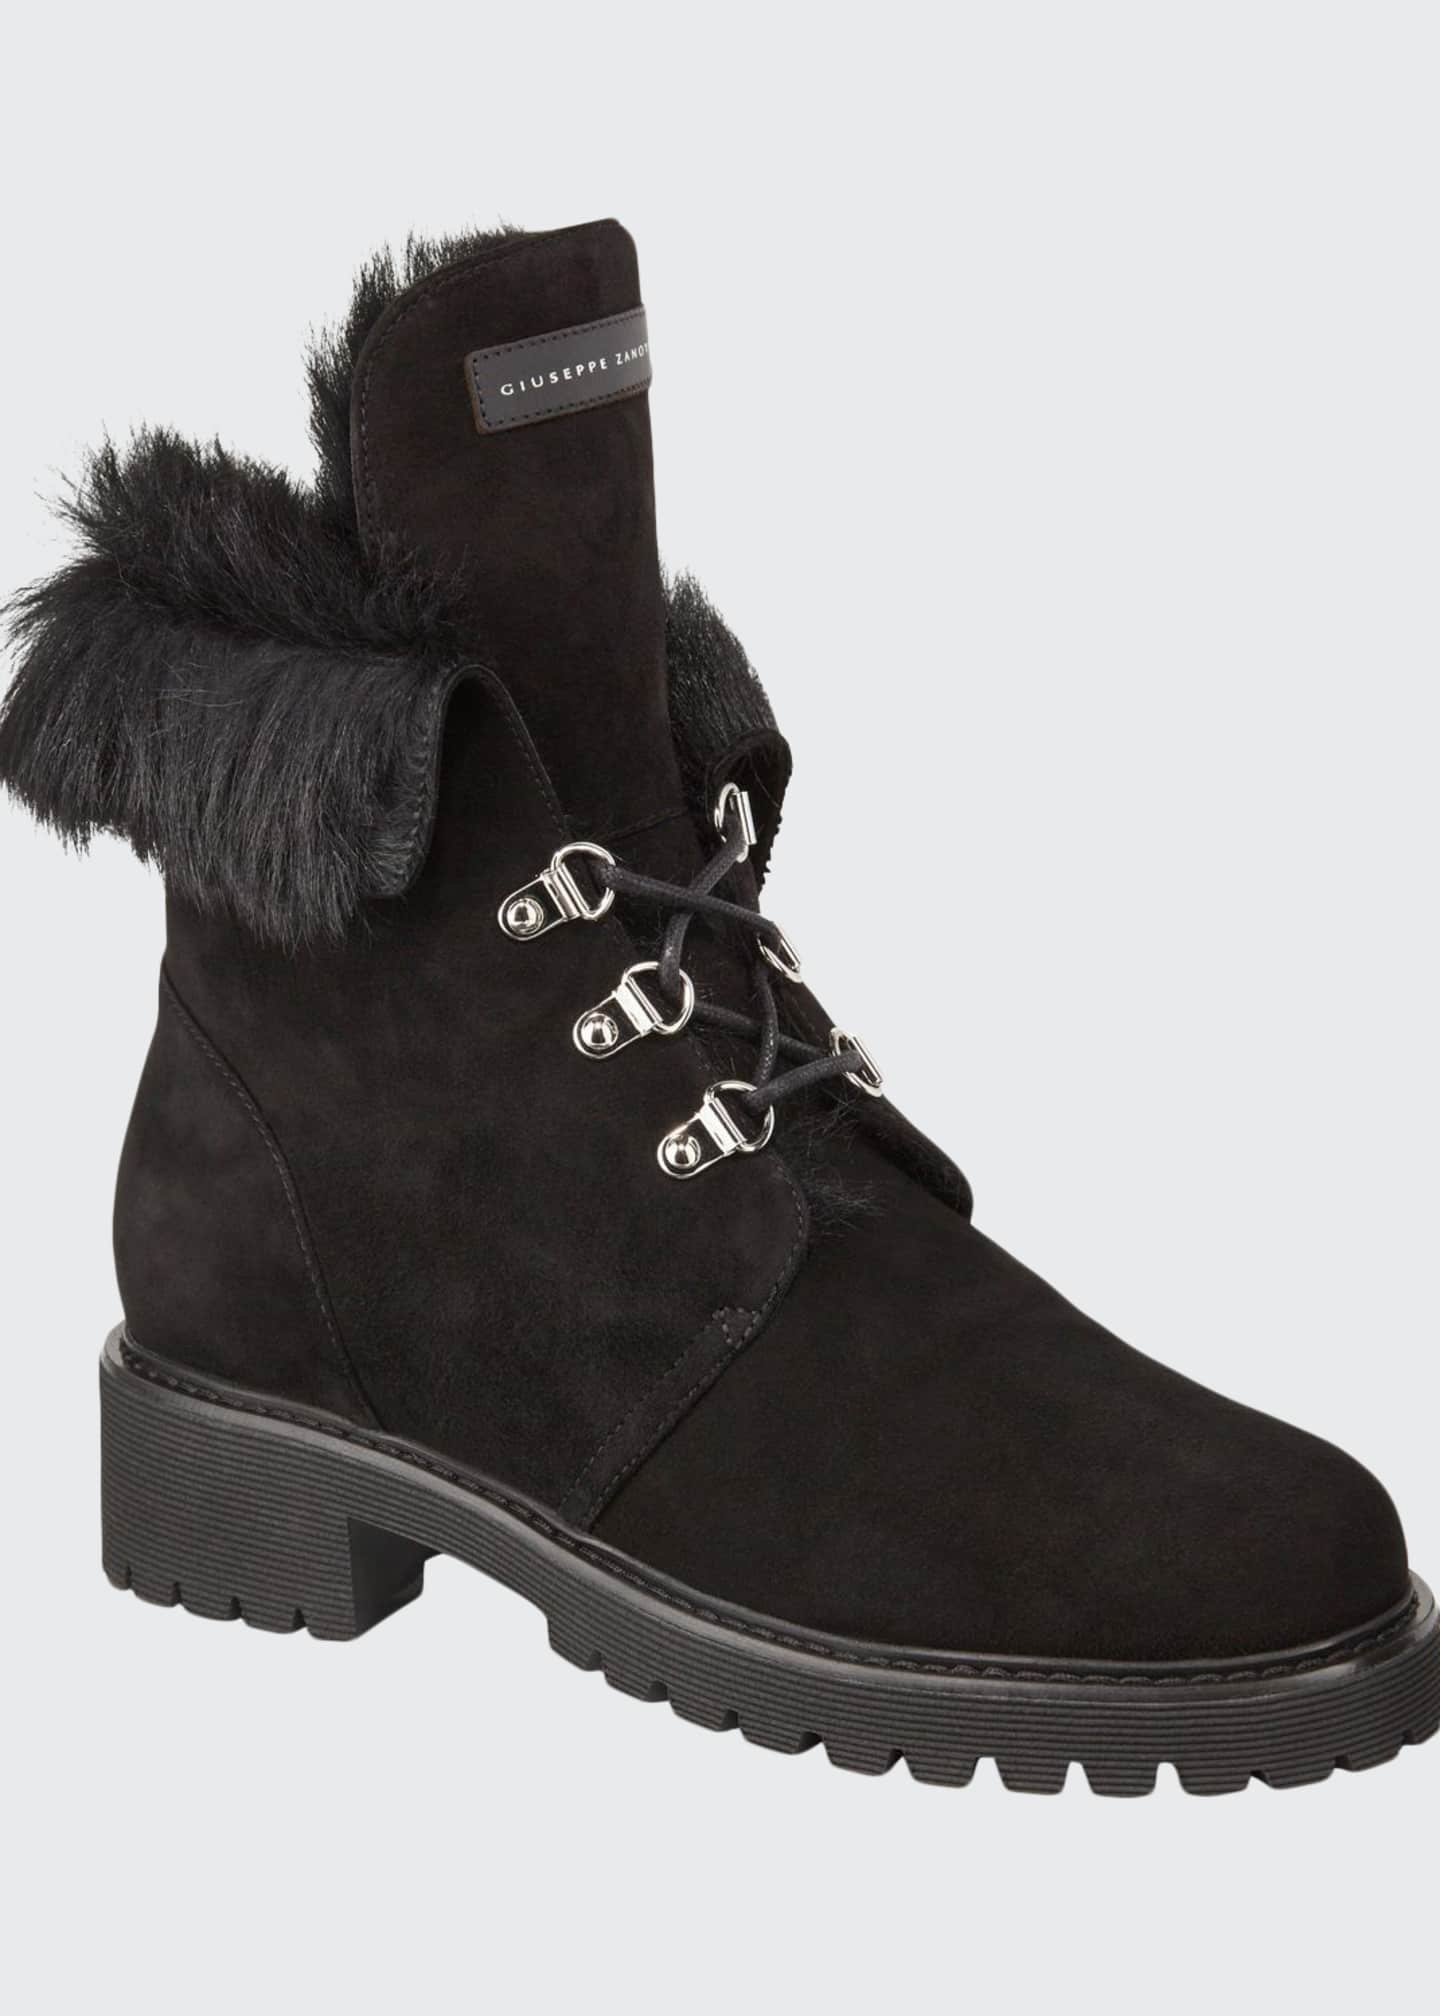 Giuseppe Zanotti Fur-Lined Suede Lace-Up Boots